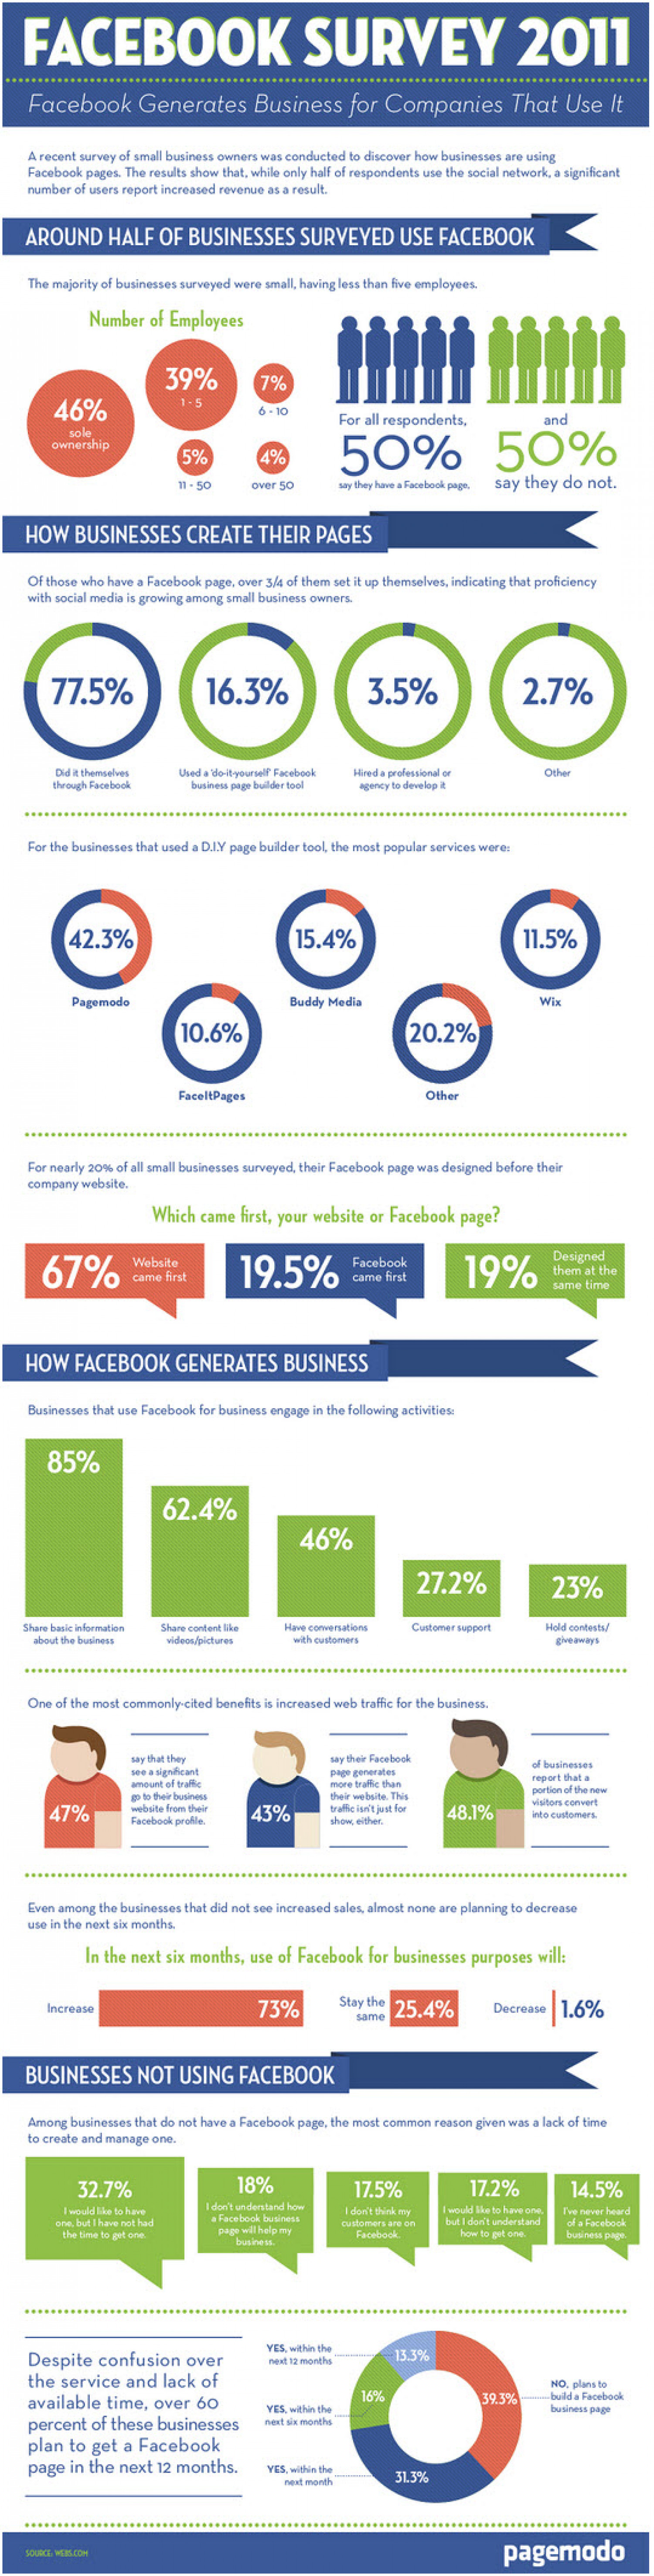 Facebook Generates Business for Companies That Use It! Infographic